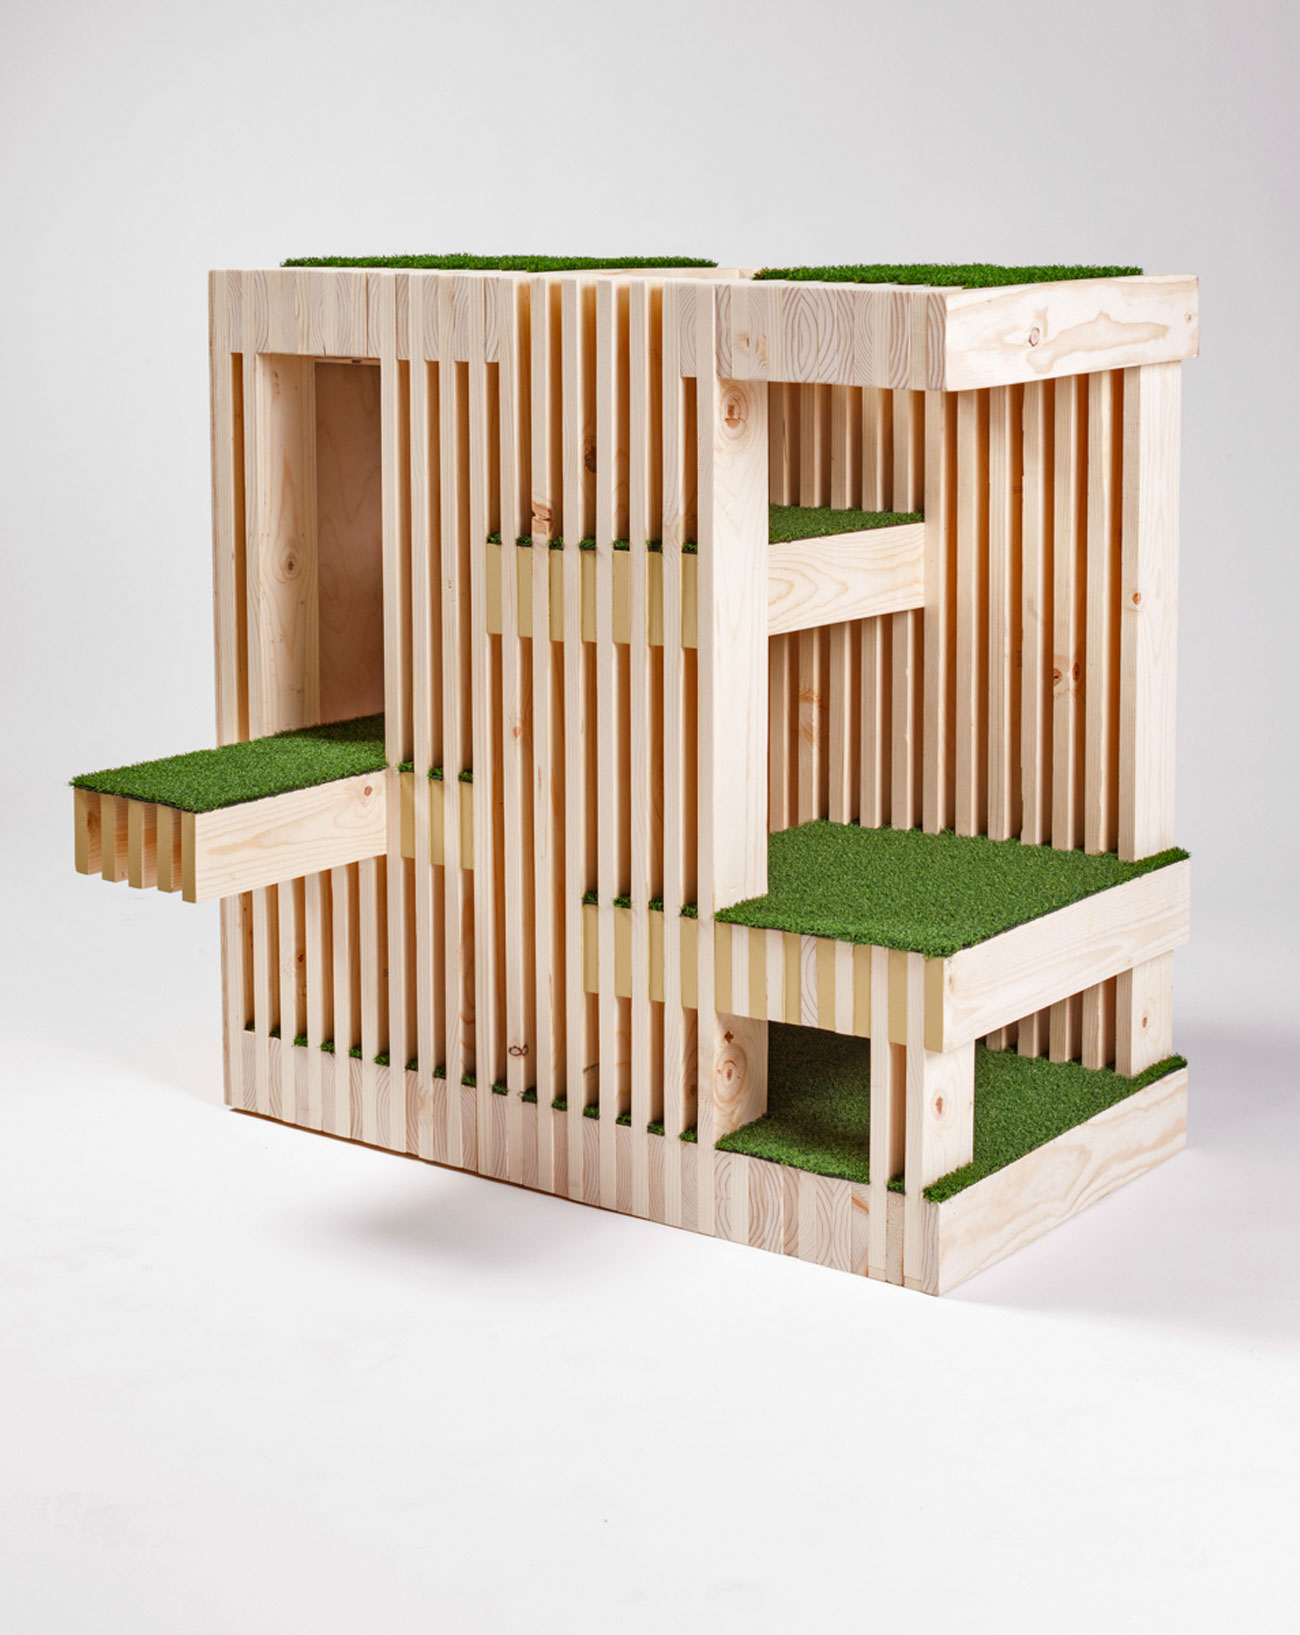 architects for animals grass